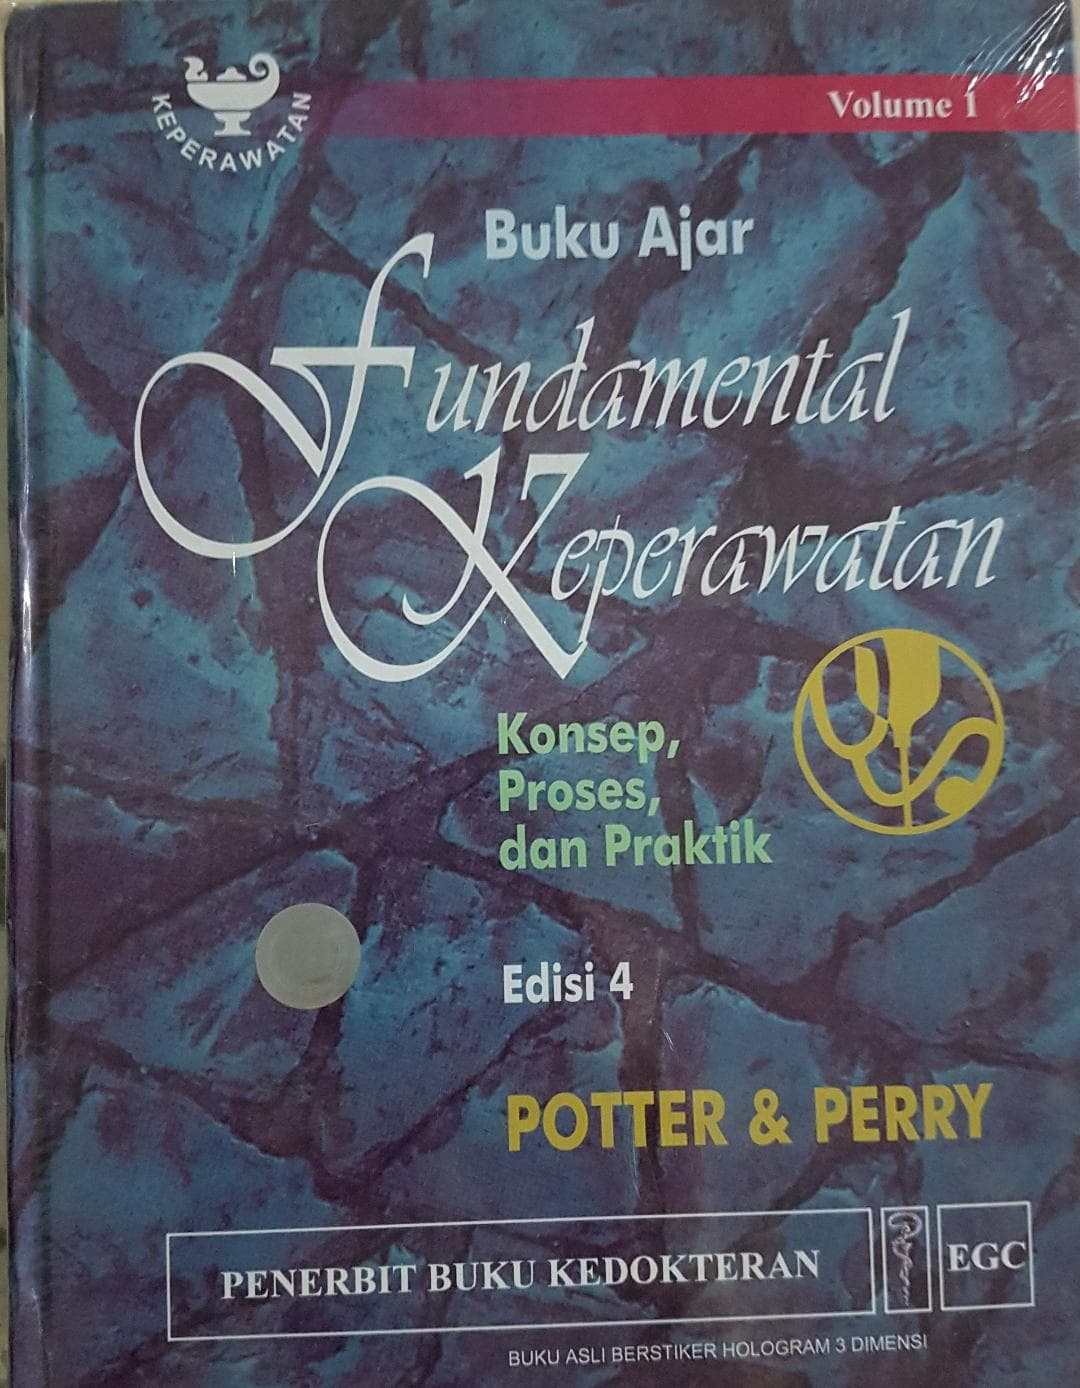 [ORIGINAL] Buku Ajar Fundamental Keperawatan ed 4 - Potter \u0026 Perry